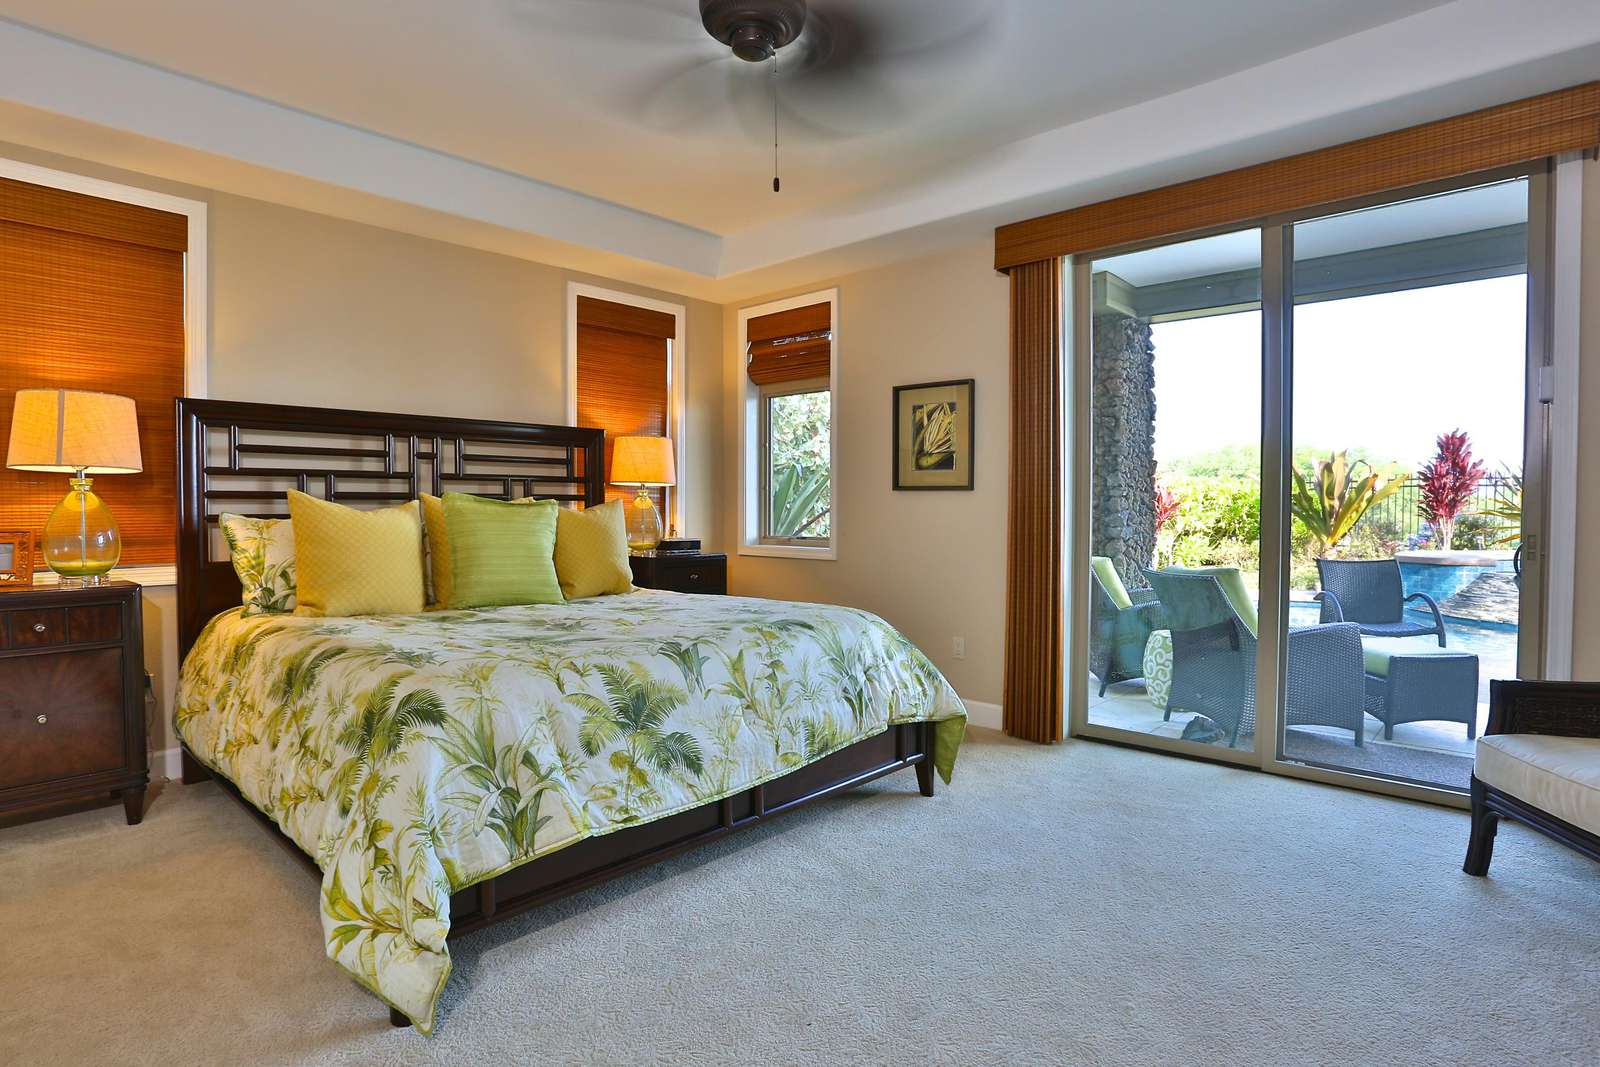 Master bedroom opens up onto the pool